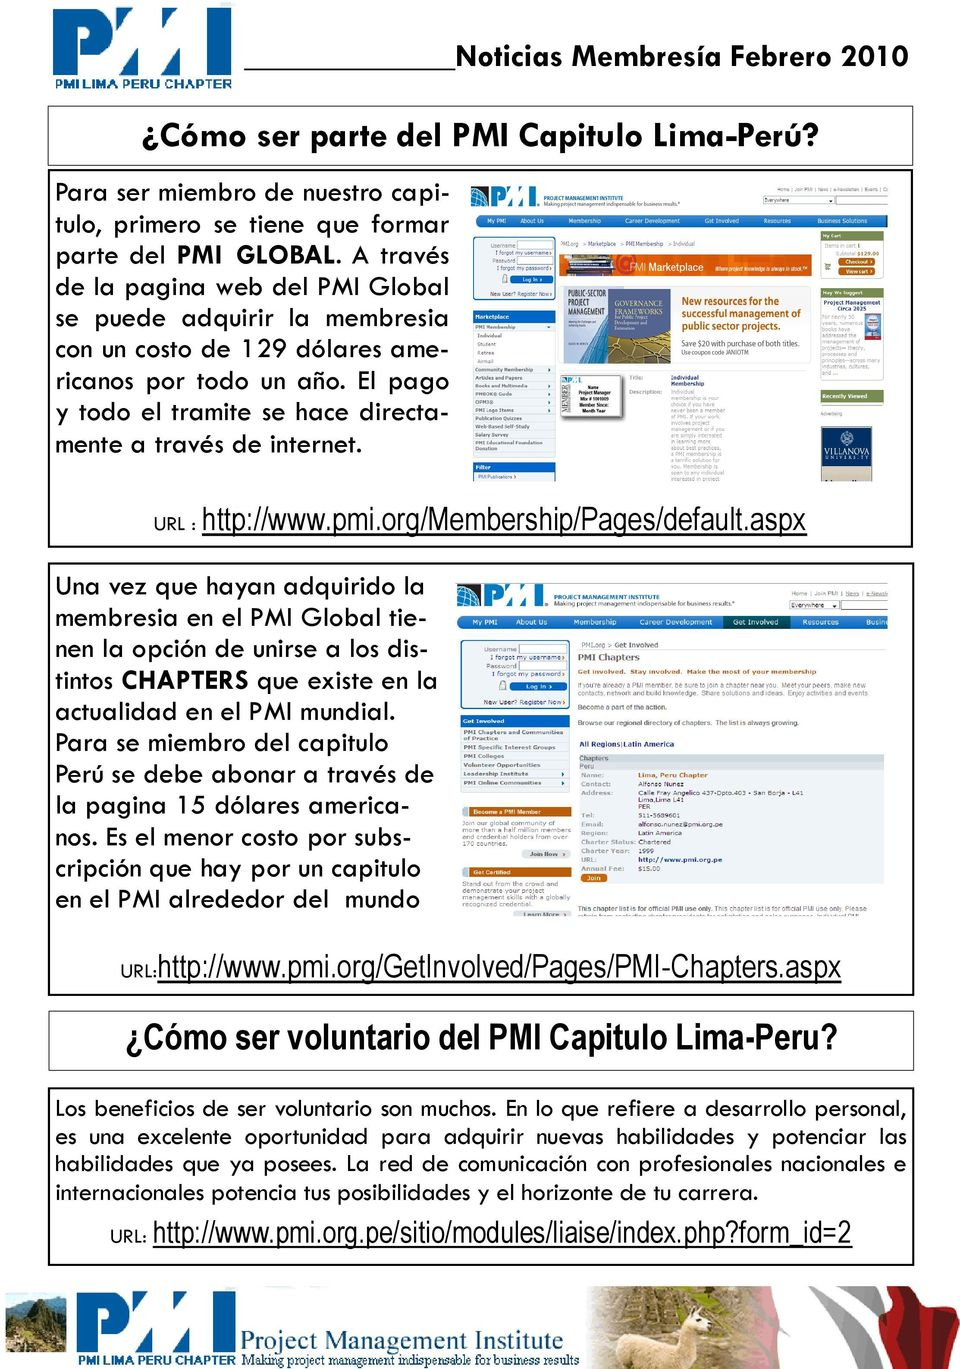 URL : http://www.pmi.org/membership/pages/default.